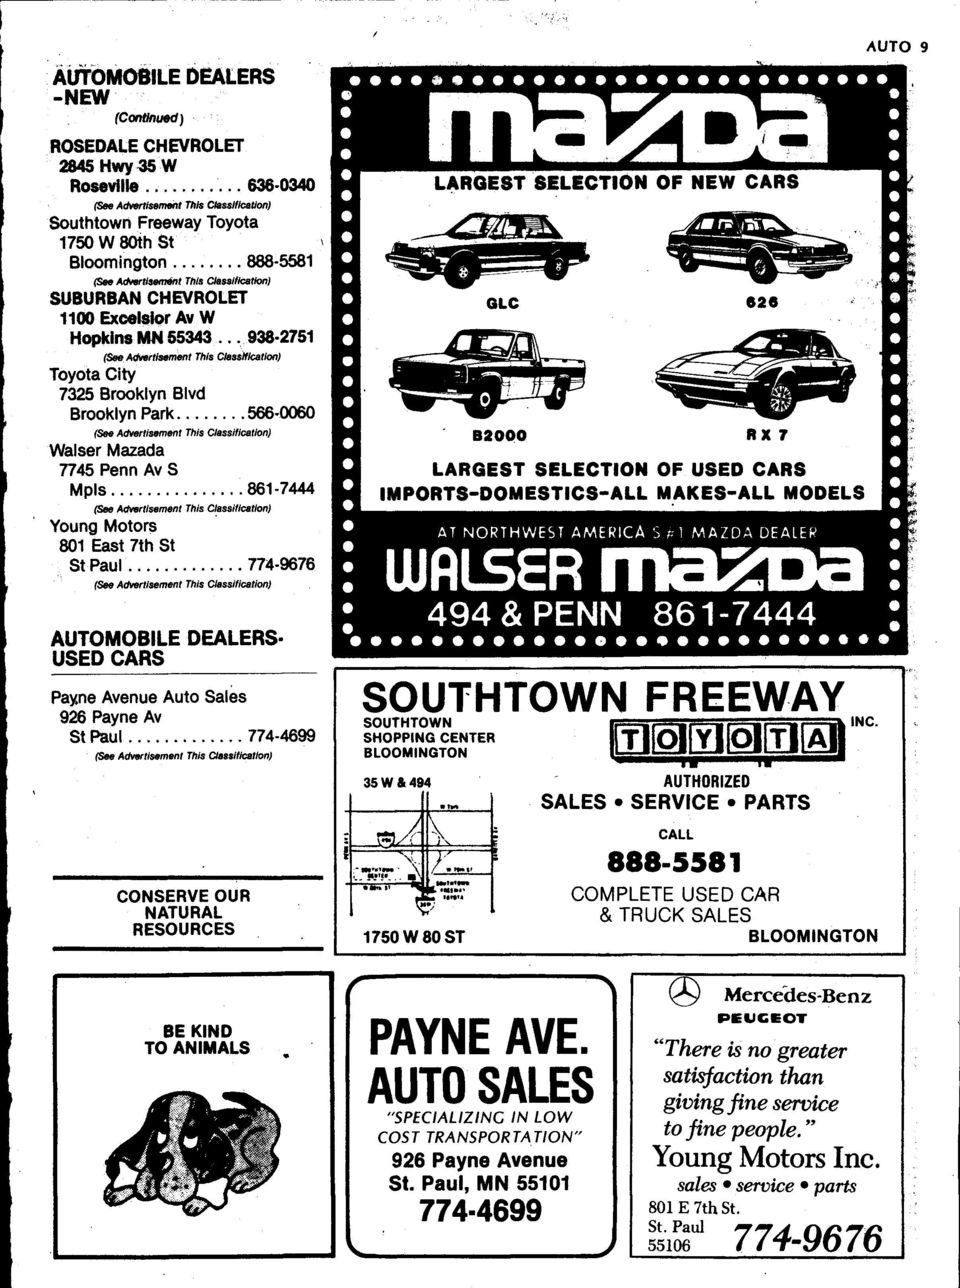 .. 938 2751 (~AclttertSflment This Classification) Toyota City 7325 Brooklyn Blvd Brooklyn Park 566 0060 (see Advertisement This Clesslflcatlon) Walser Mazada 7745 Penn Av S Mpls 861-7444 (See